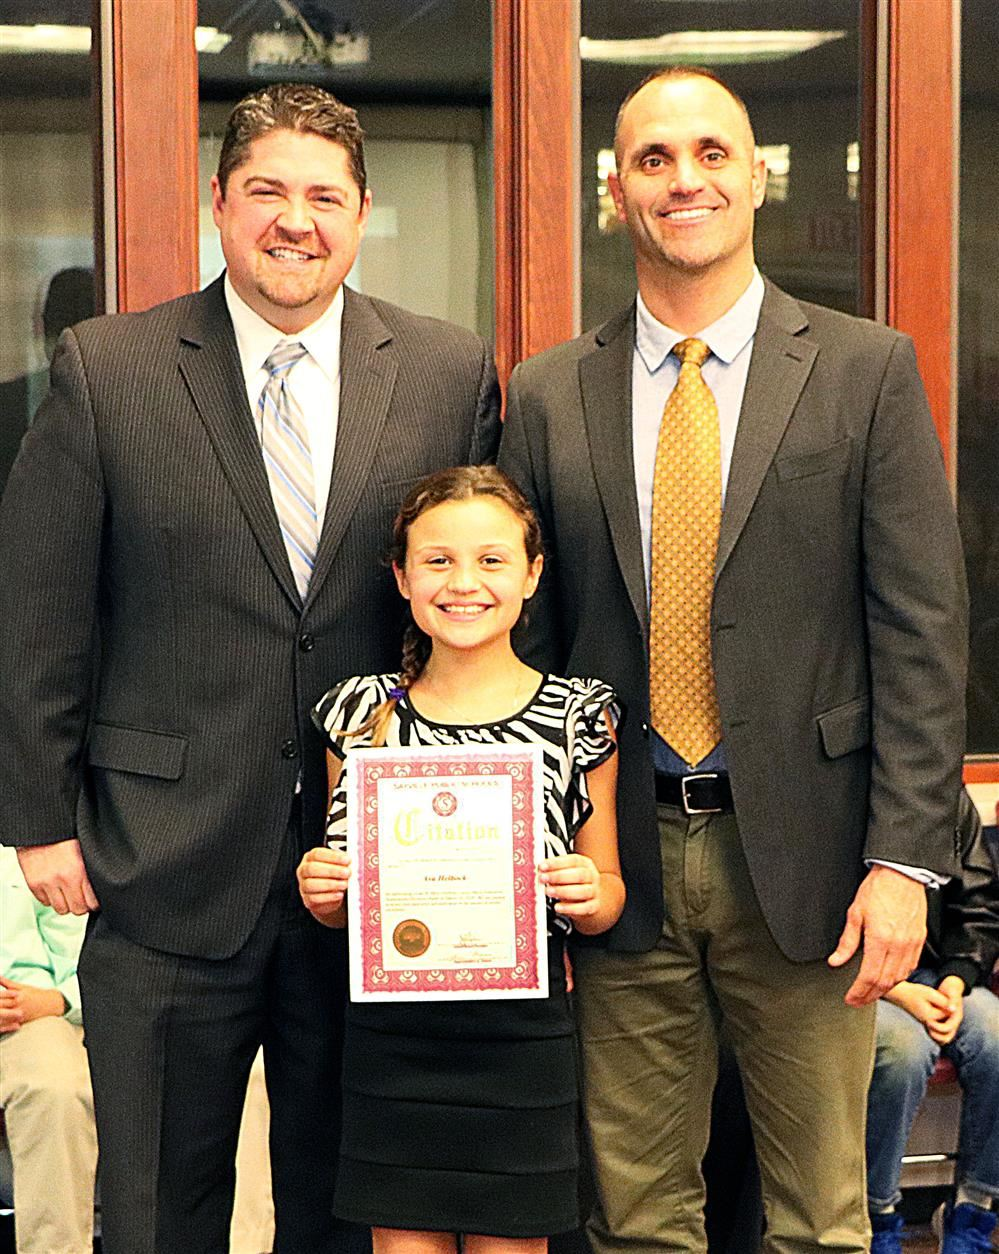 Performed on oboe at SCMEA